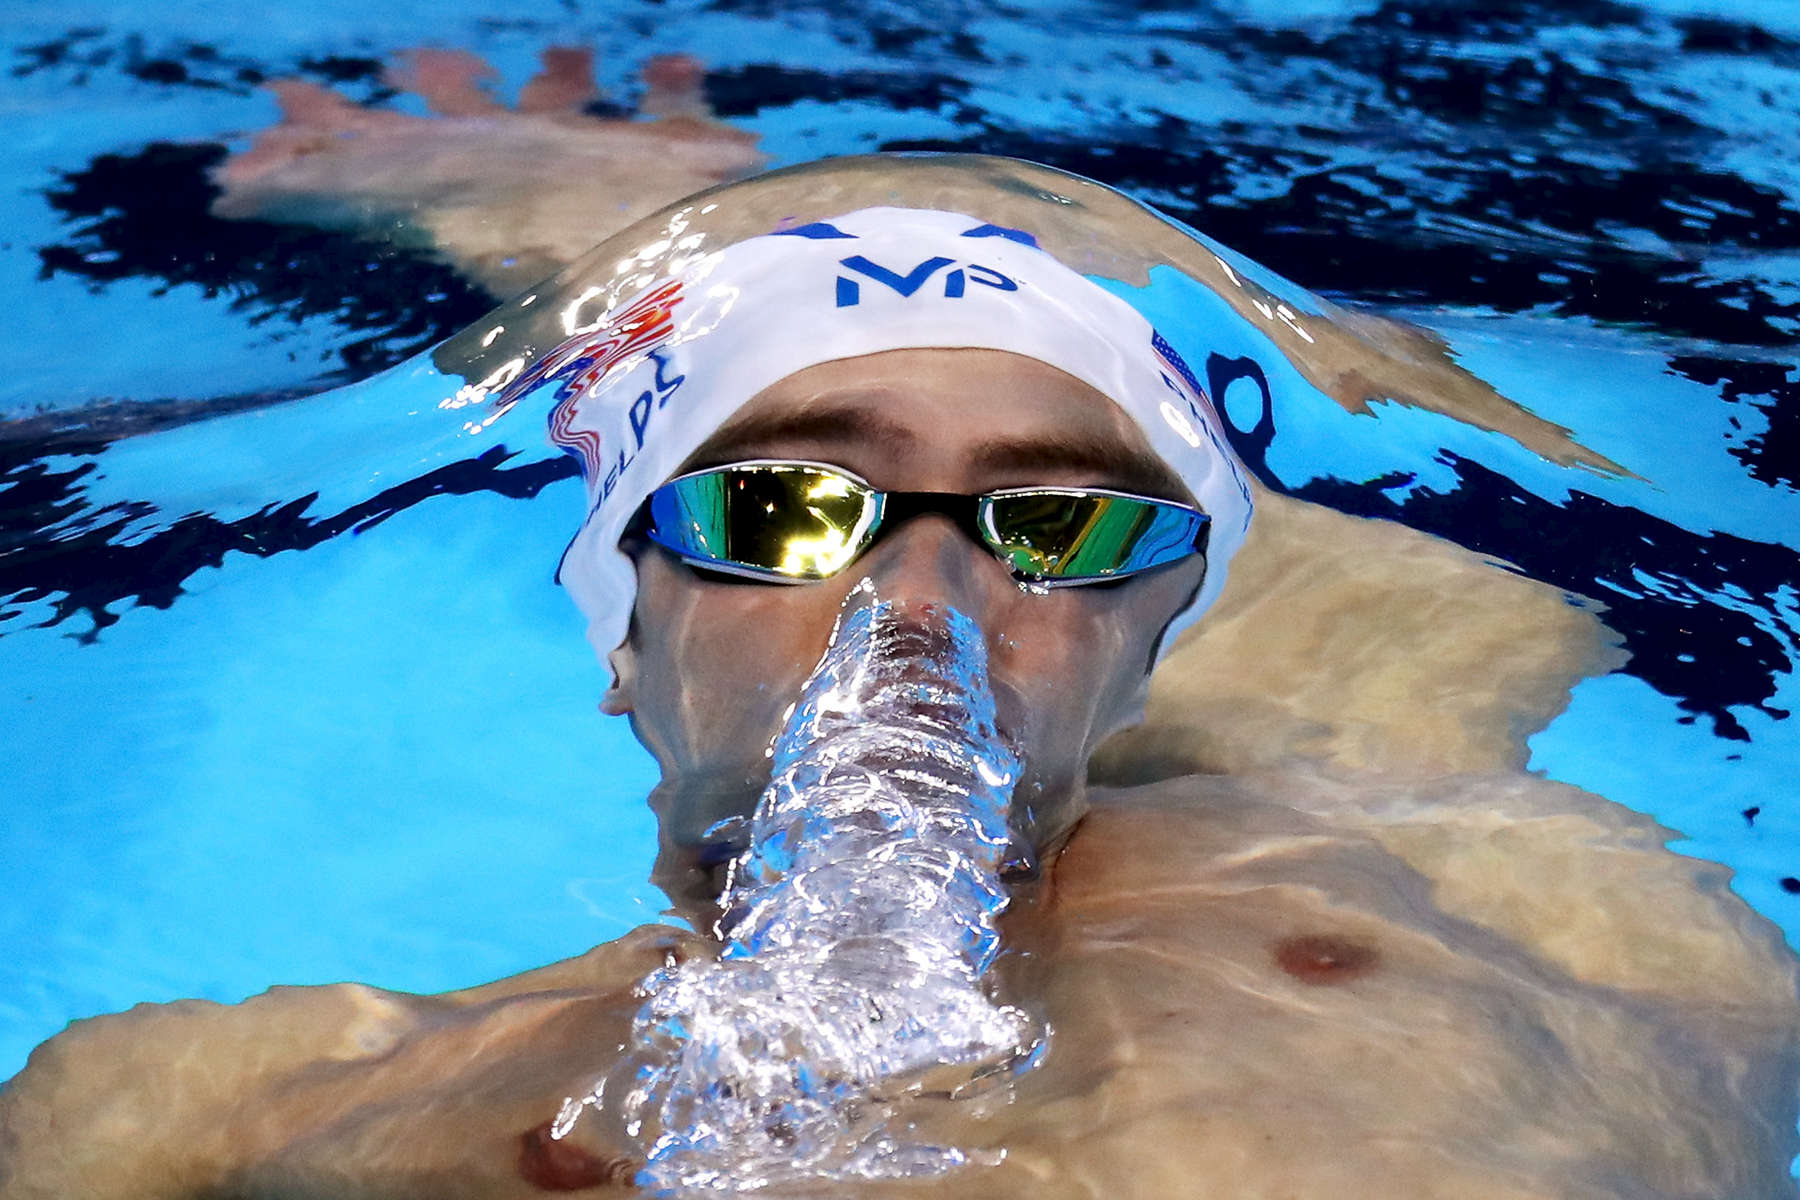 Michael Phelps of the United States competes in the Men's 200m Individual Medley heat on Day 5 of the Rio 2016 Olympic Games at the Olympic Aquatics Stadium on August 10, 2016 in Rio de Janeiro, Brazil.